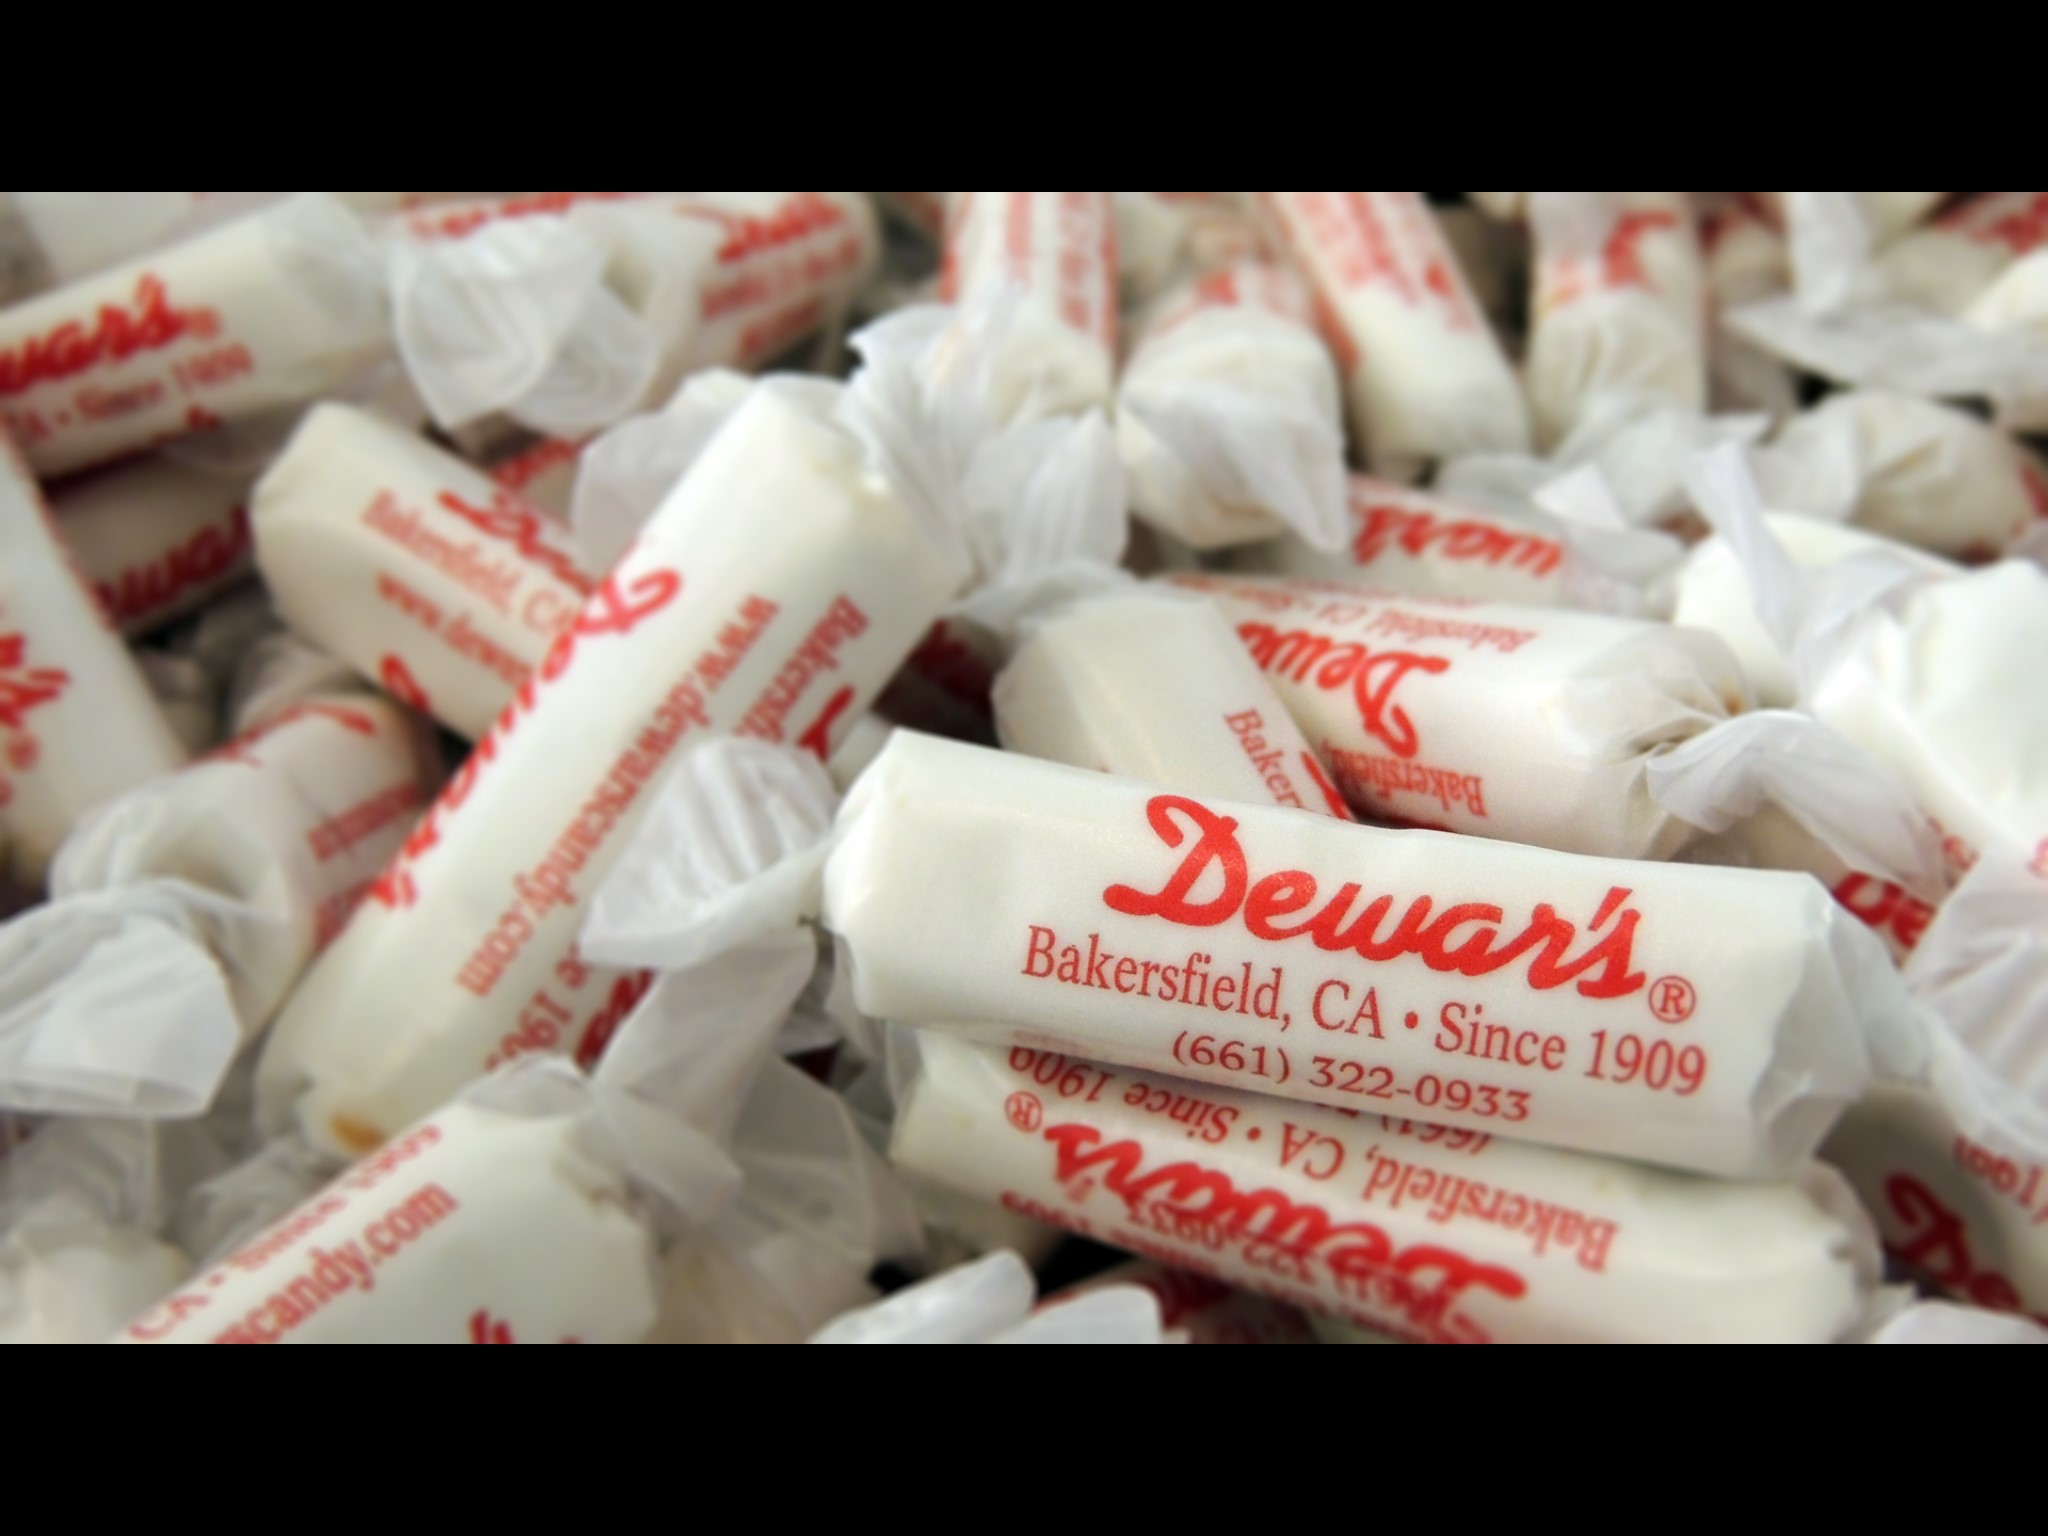 Dewar's Candies & Ice Cream Parlor